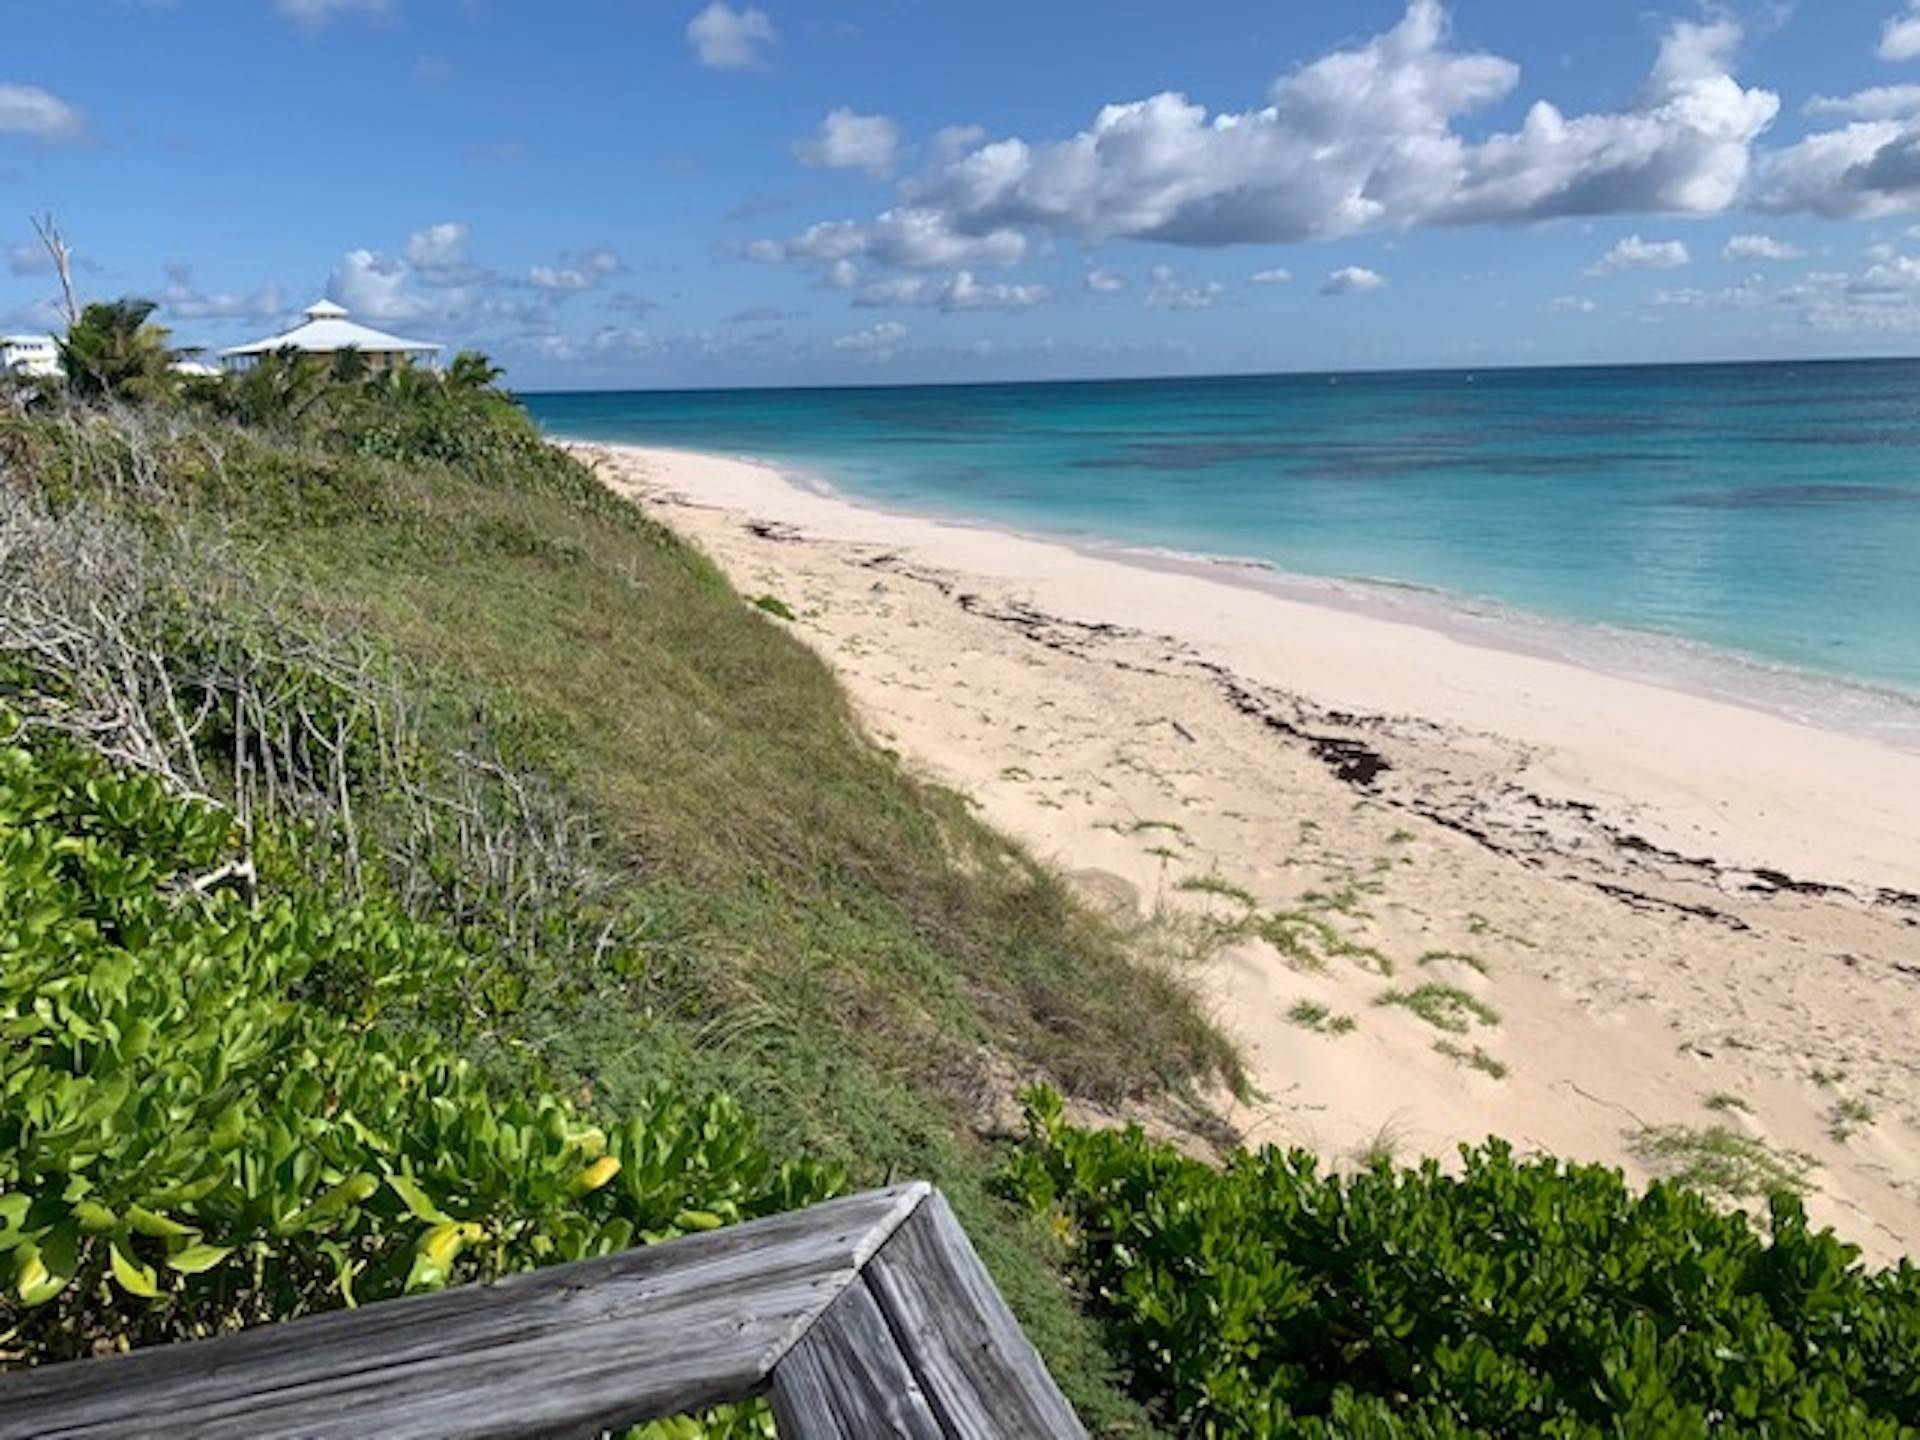 10. Single Family Homes for Sale at Sea to Sea - MLS 43964 Elbow Cay Hope Town, Abaco, Bahamas